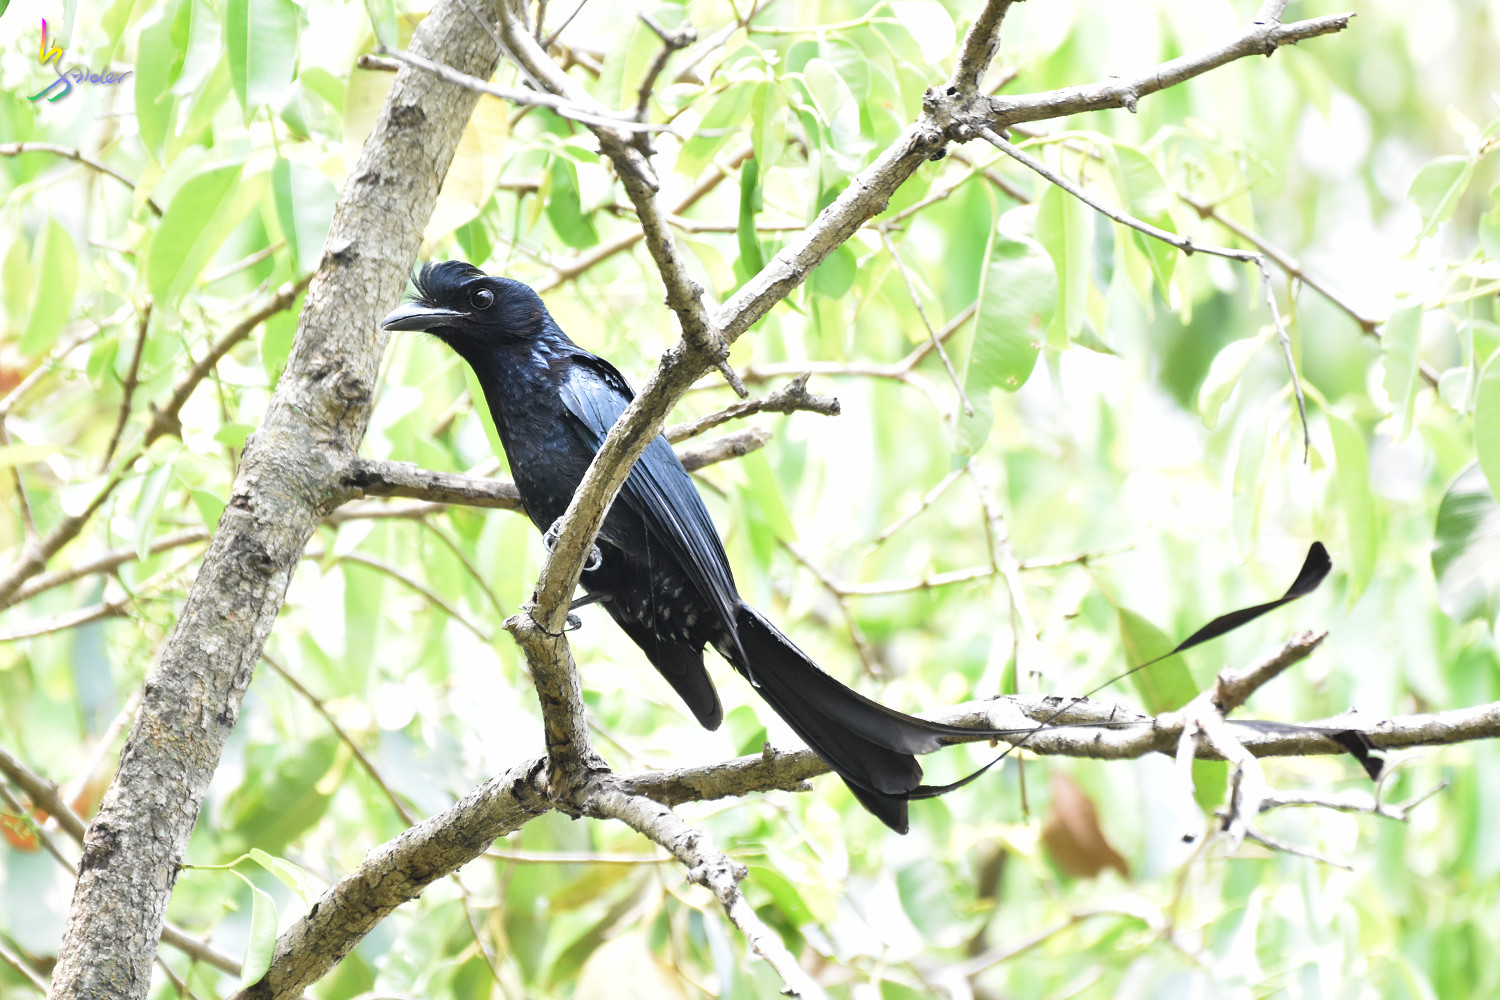 Greater_Racket-tailed_Drongo_1350